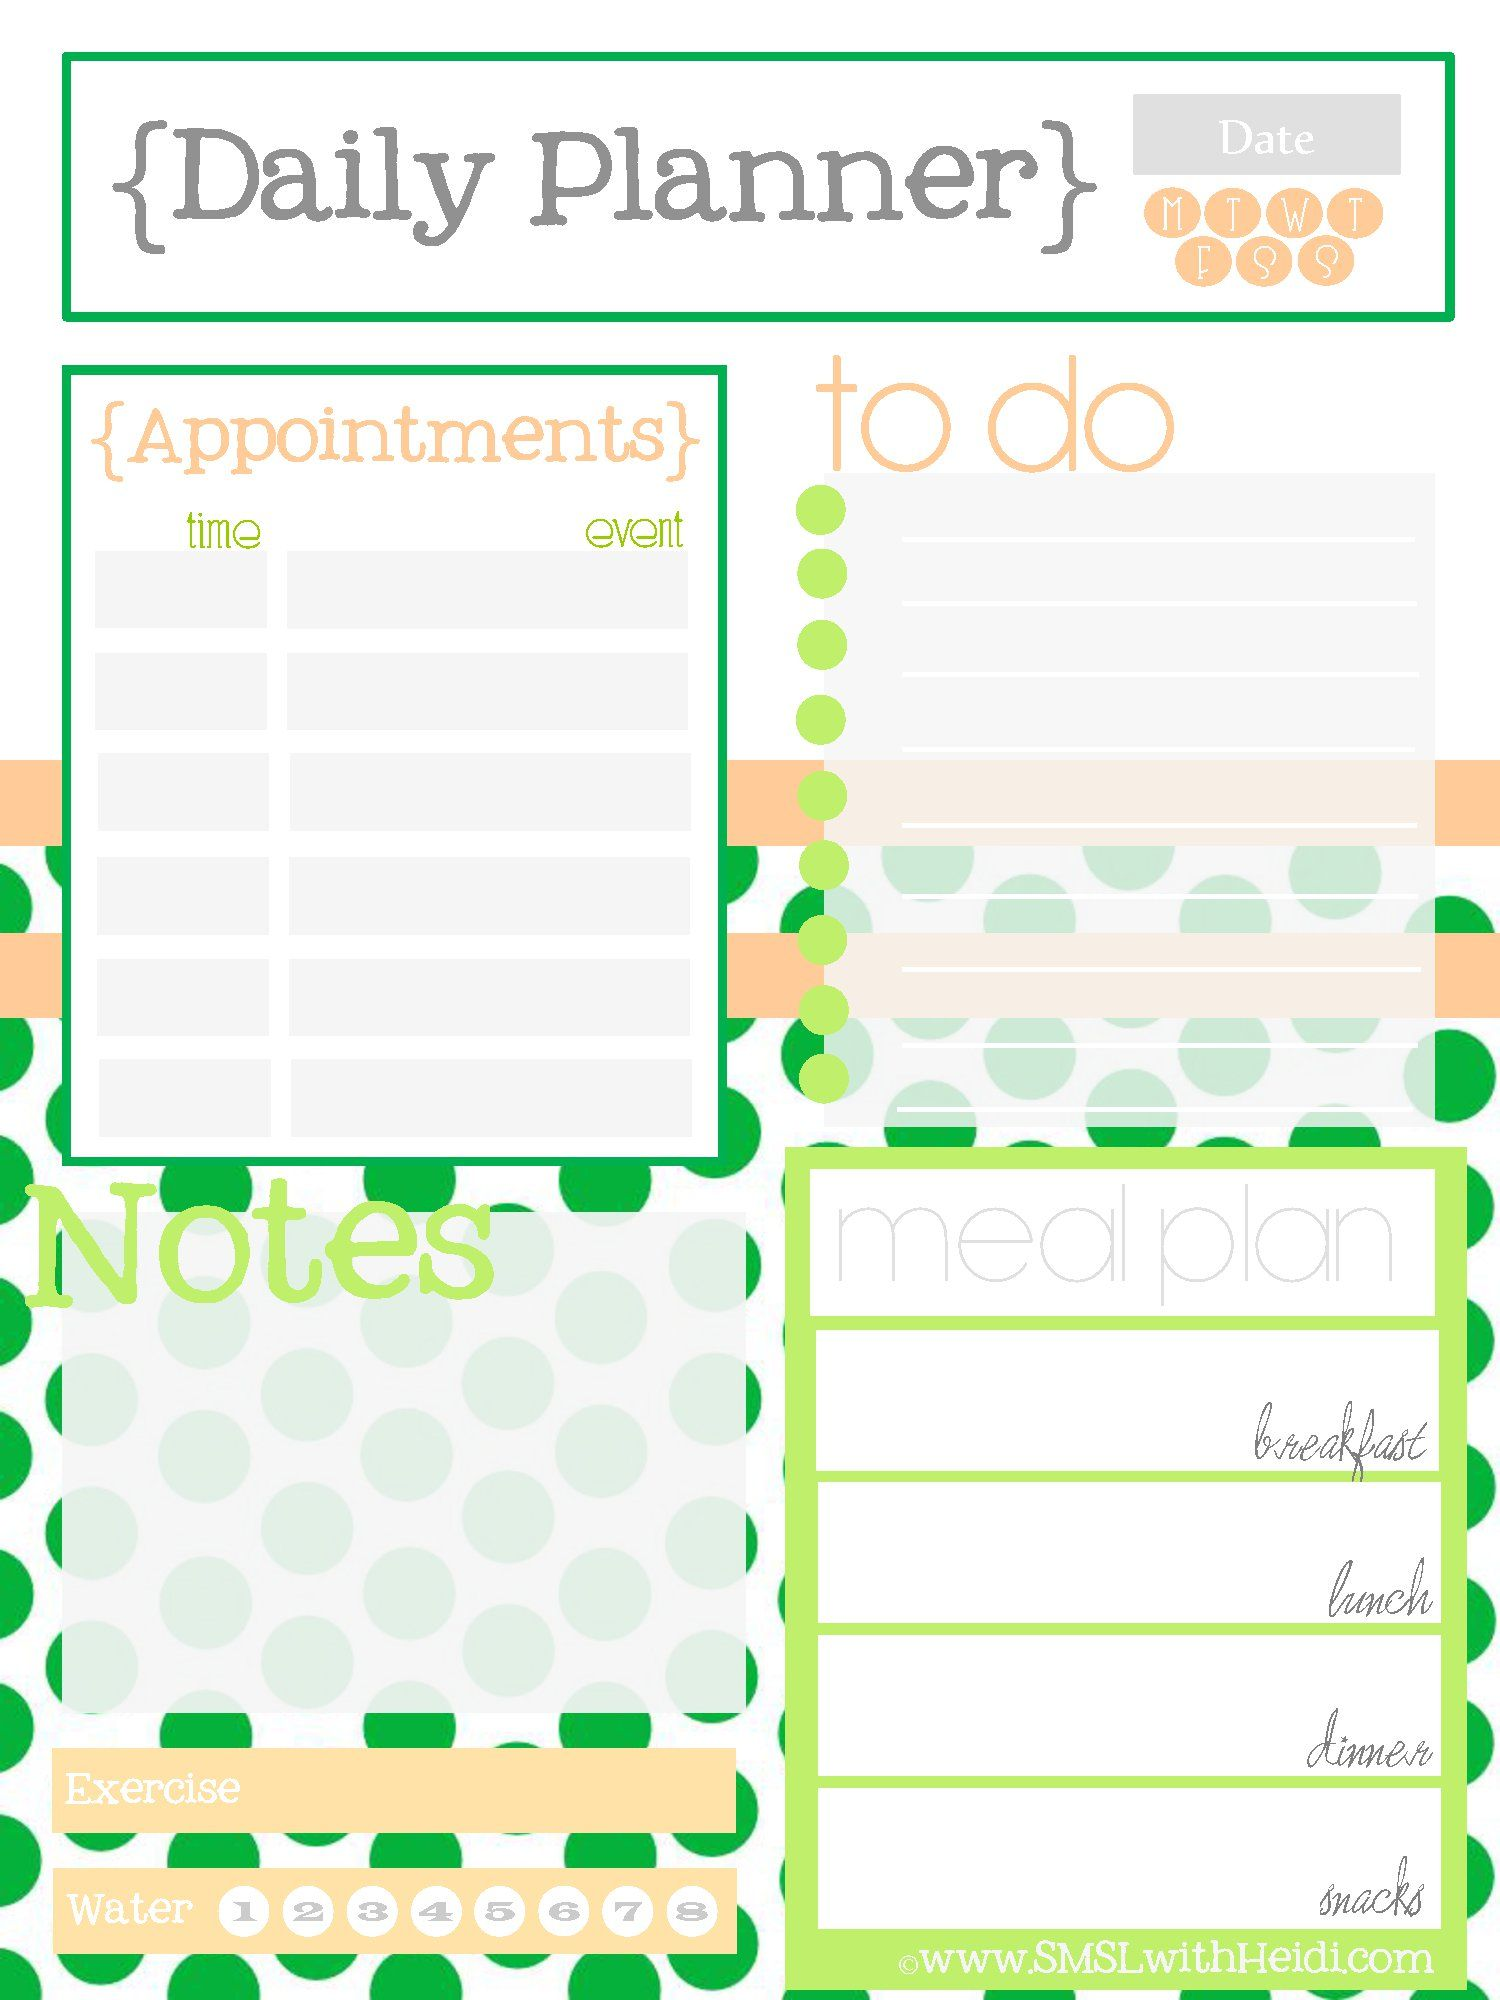 Daily and Weekly Planners | Weekly planner, Planners and Filofax